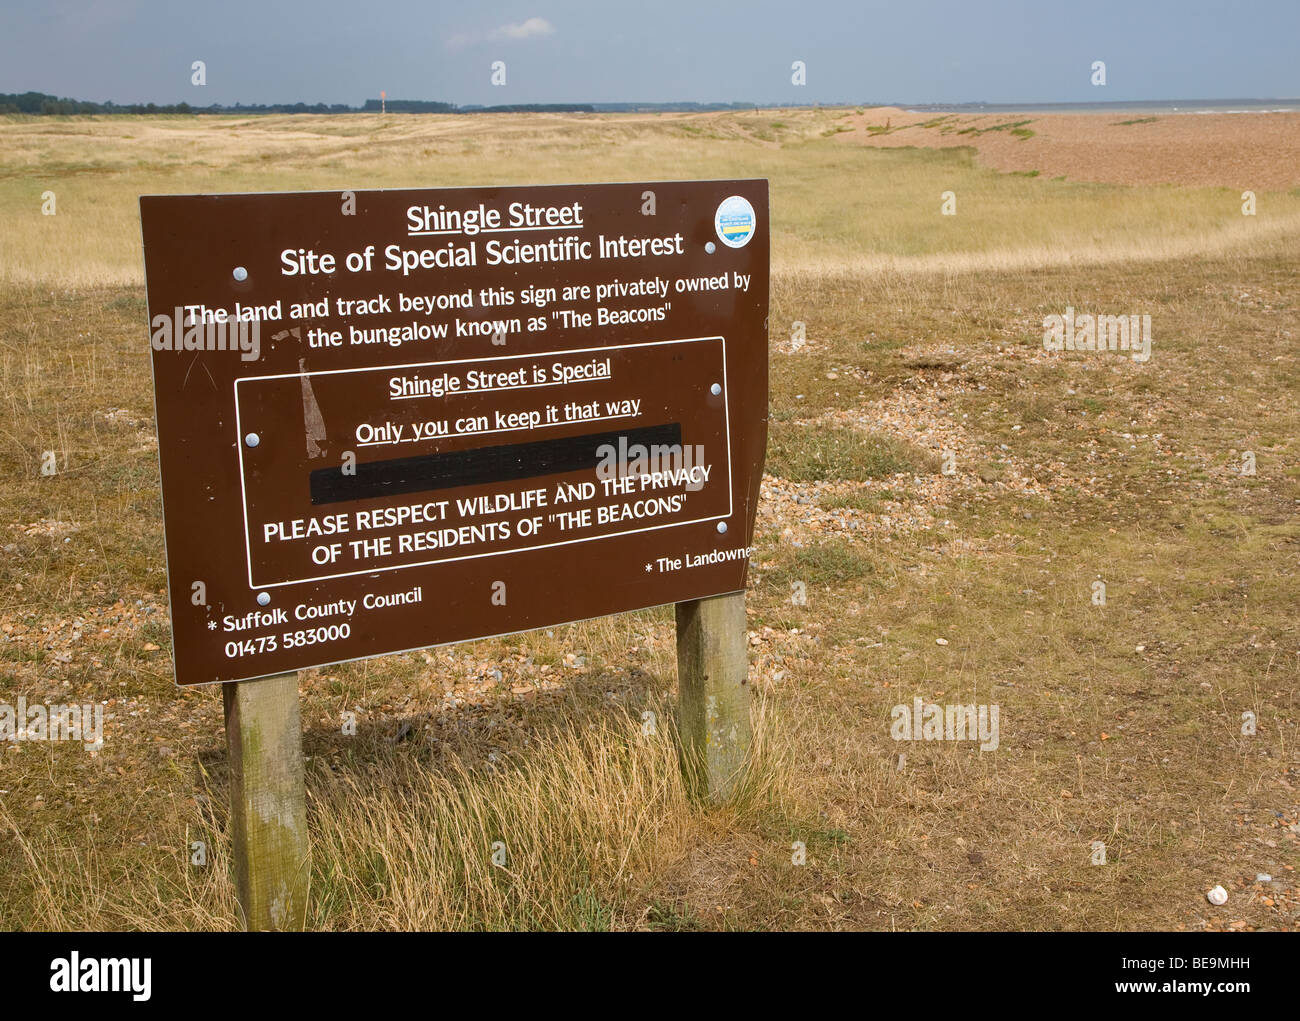 Site of Special Scientific Interest, Shingle Street, Suffolk, England - Stock Image